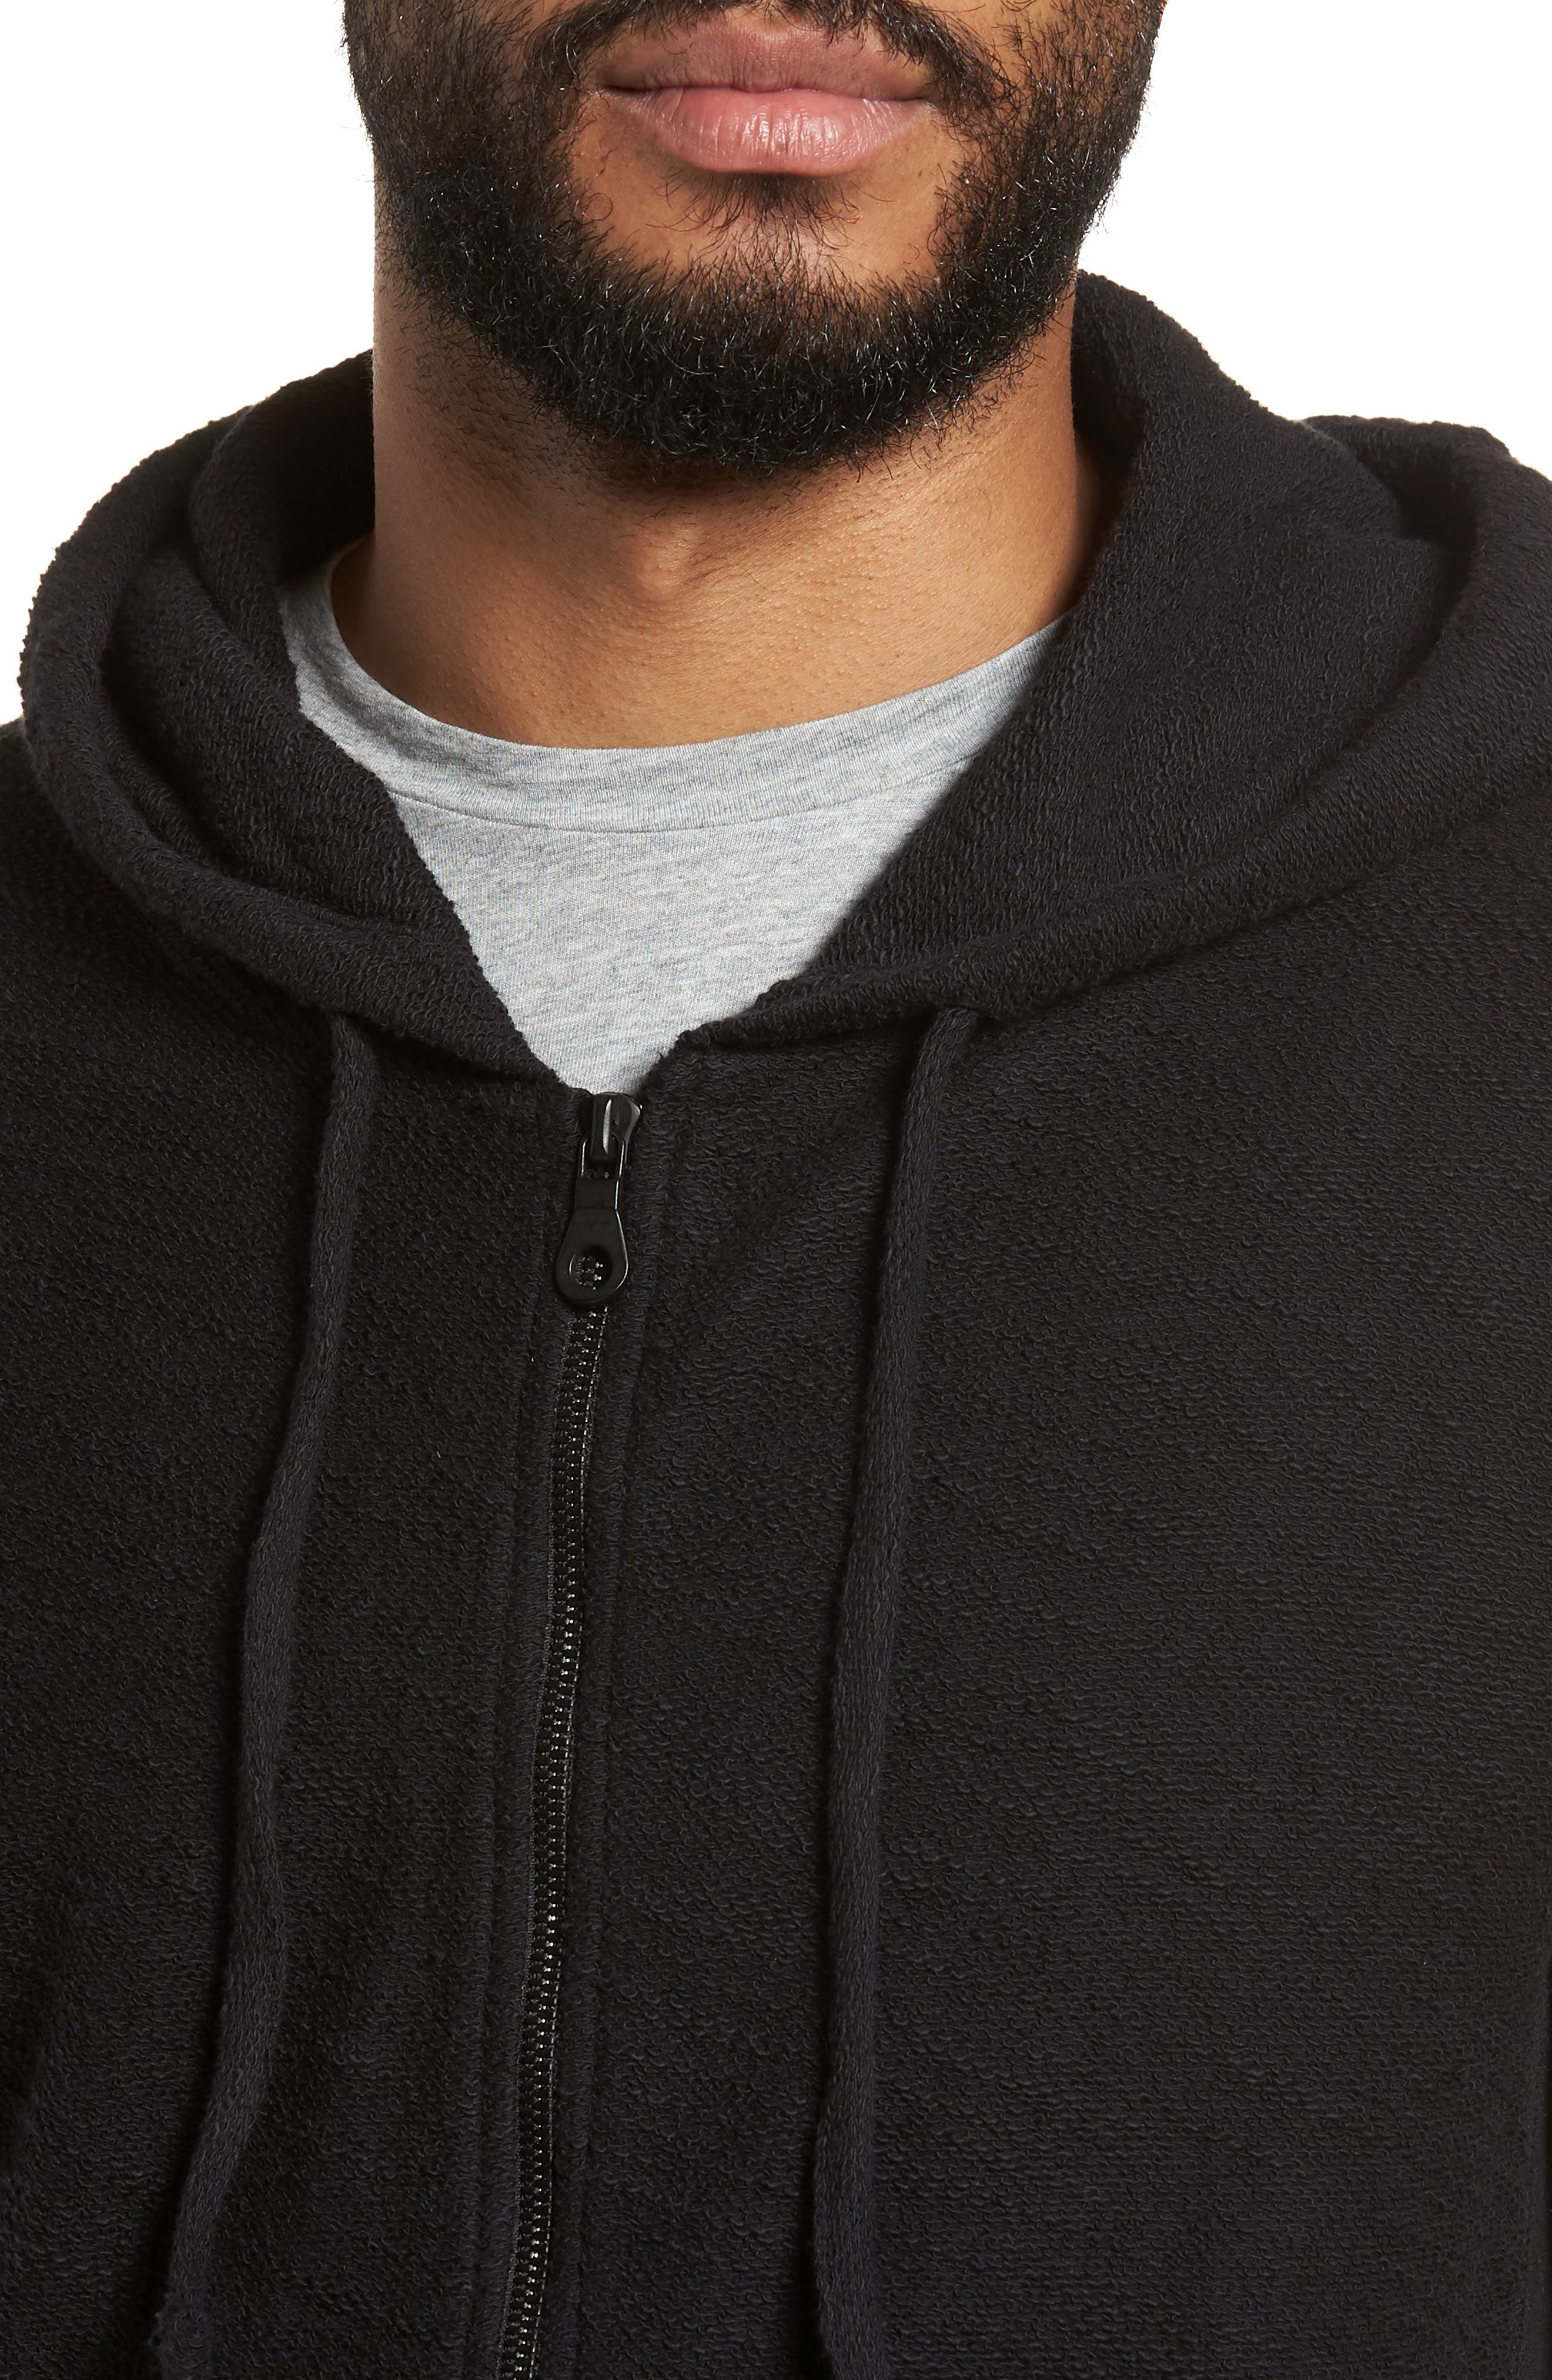 Terrycloth Cotton Blend Zip Hoodie,                             Alternate thumbnail 10, color,